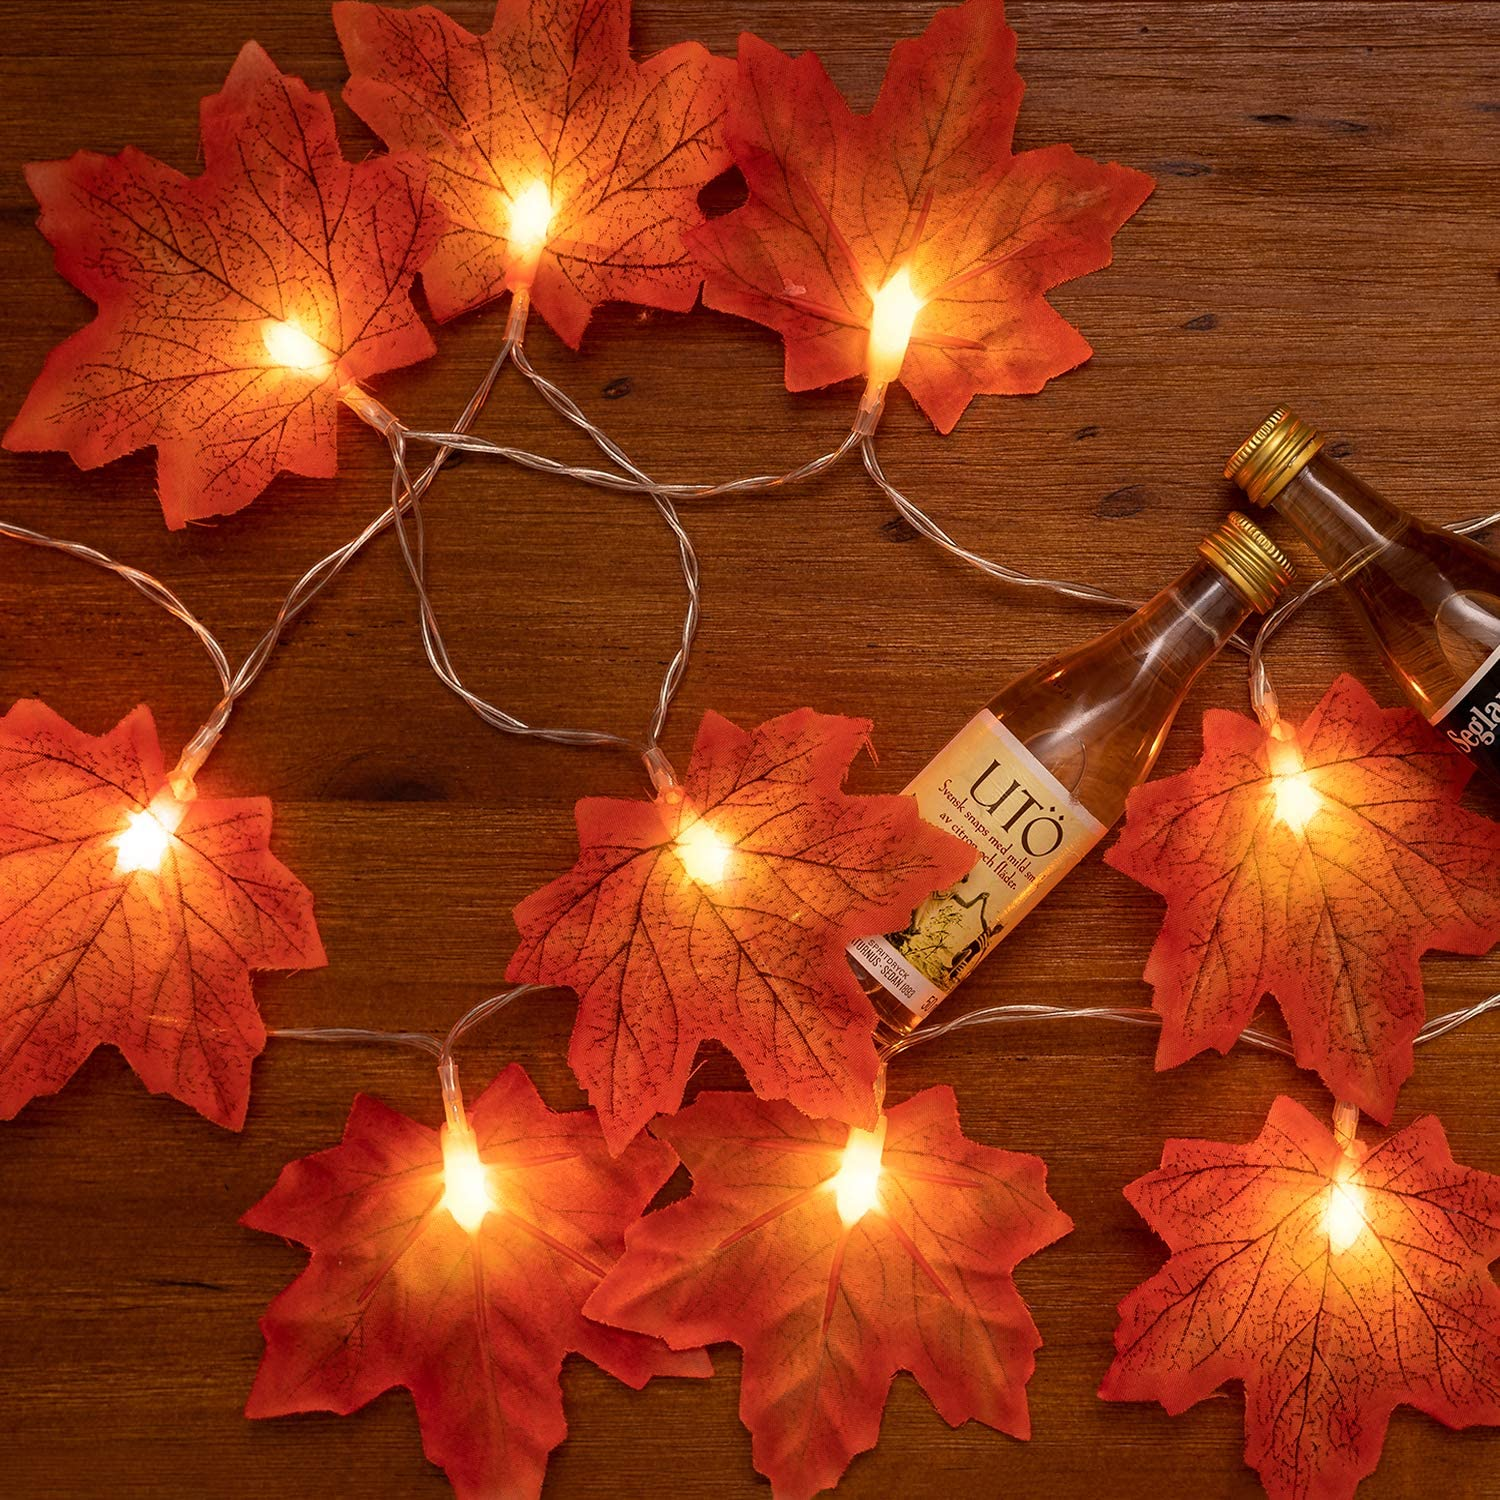 Huishang 4 Pack of Maple Leaves Thanksgiving Lights with Tatal 40 LED, Battery Operated Lights for Outdoor Indoor Thanksgiving Decorations for Home, 2 Modes Lights String for Autumn Fall Decor